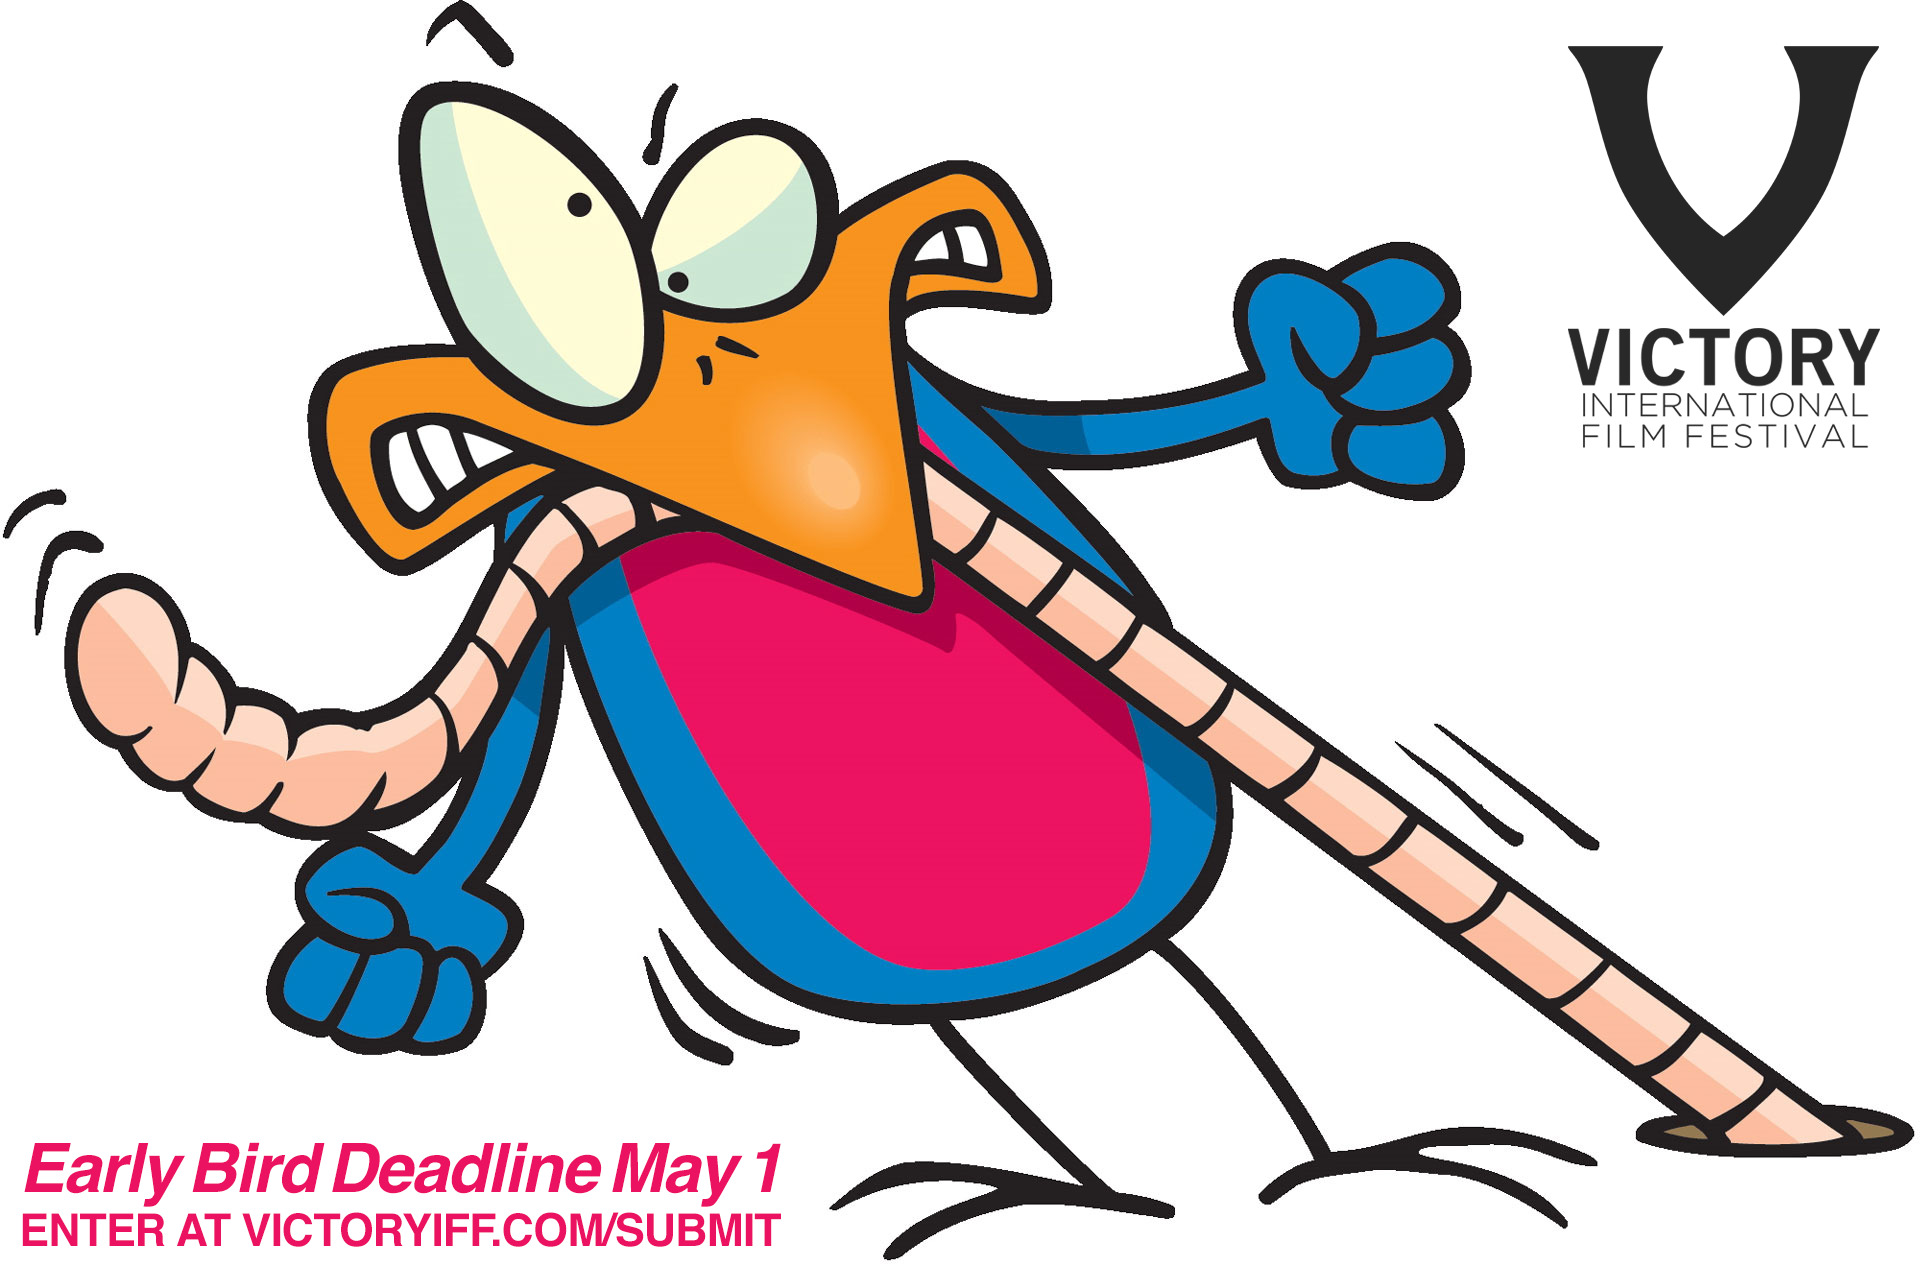 Early Bird Deadline